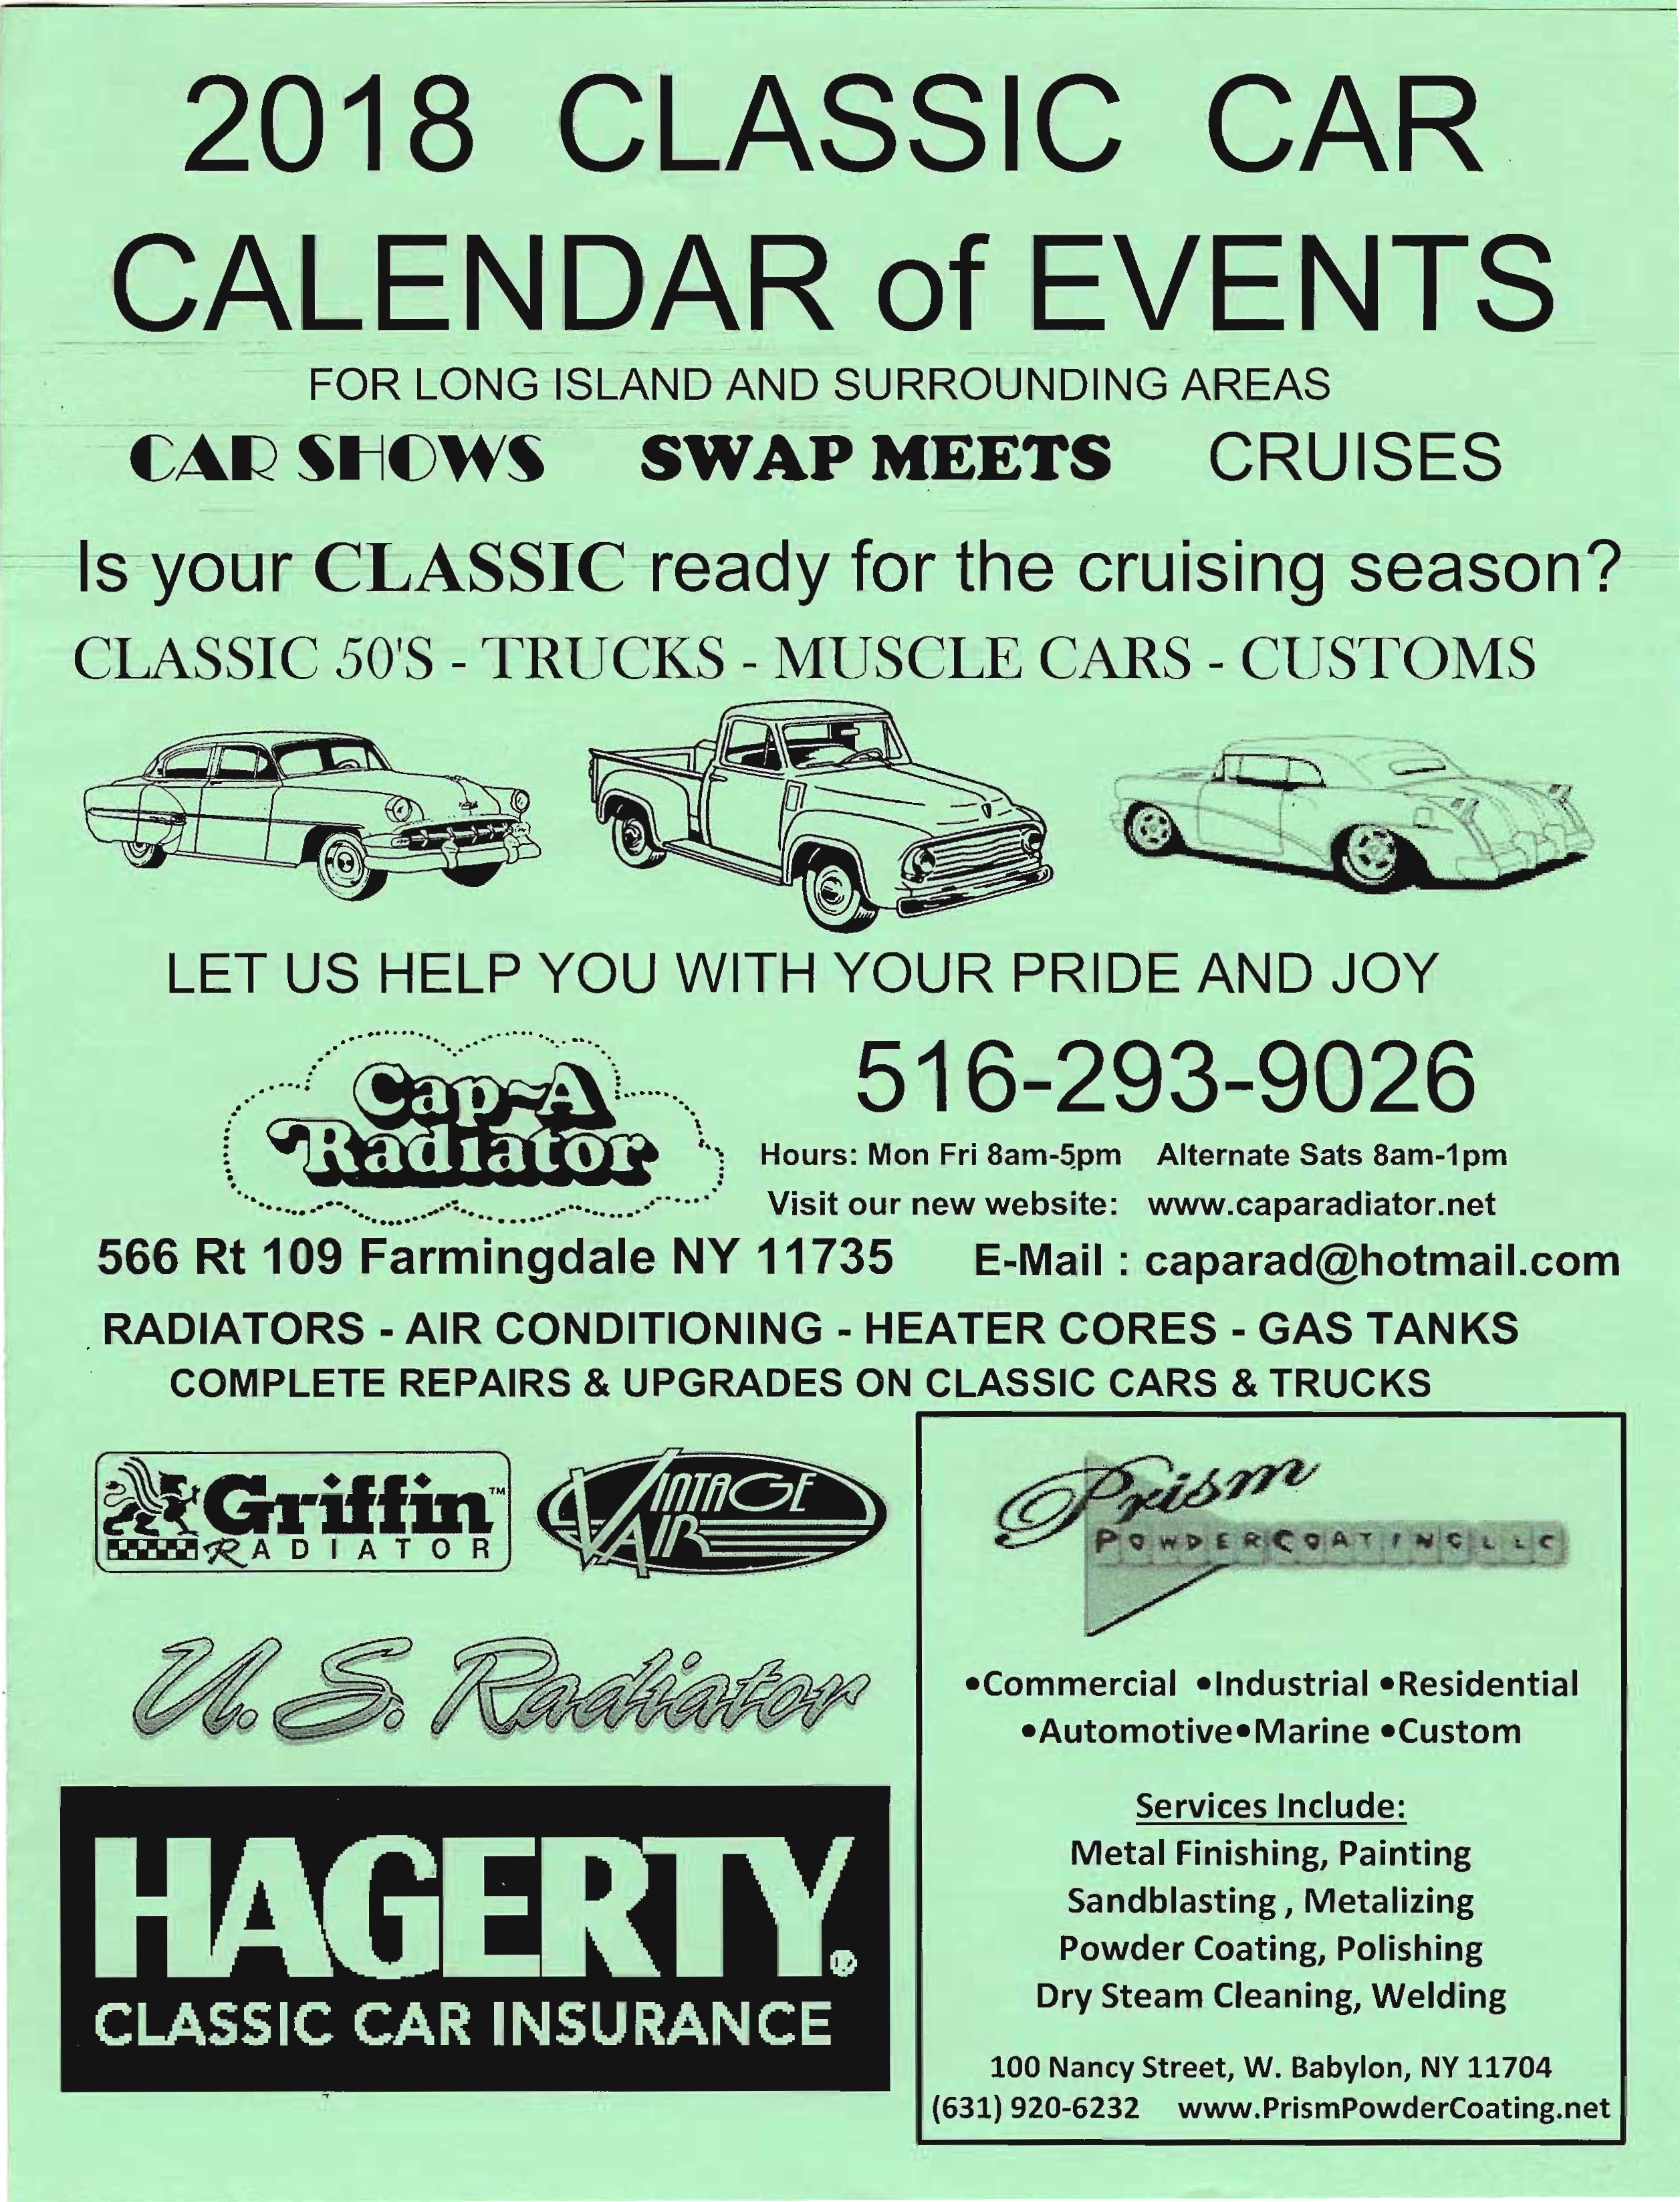 2018 Classic Car Calendar of Events First Edition through July Page 1